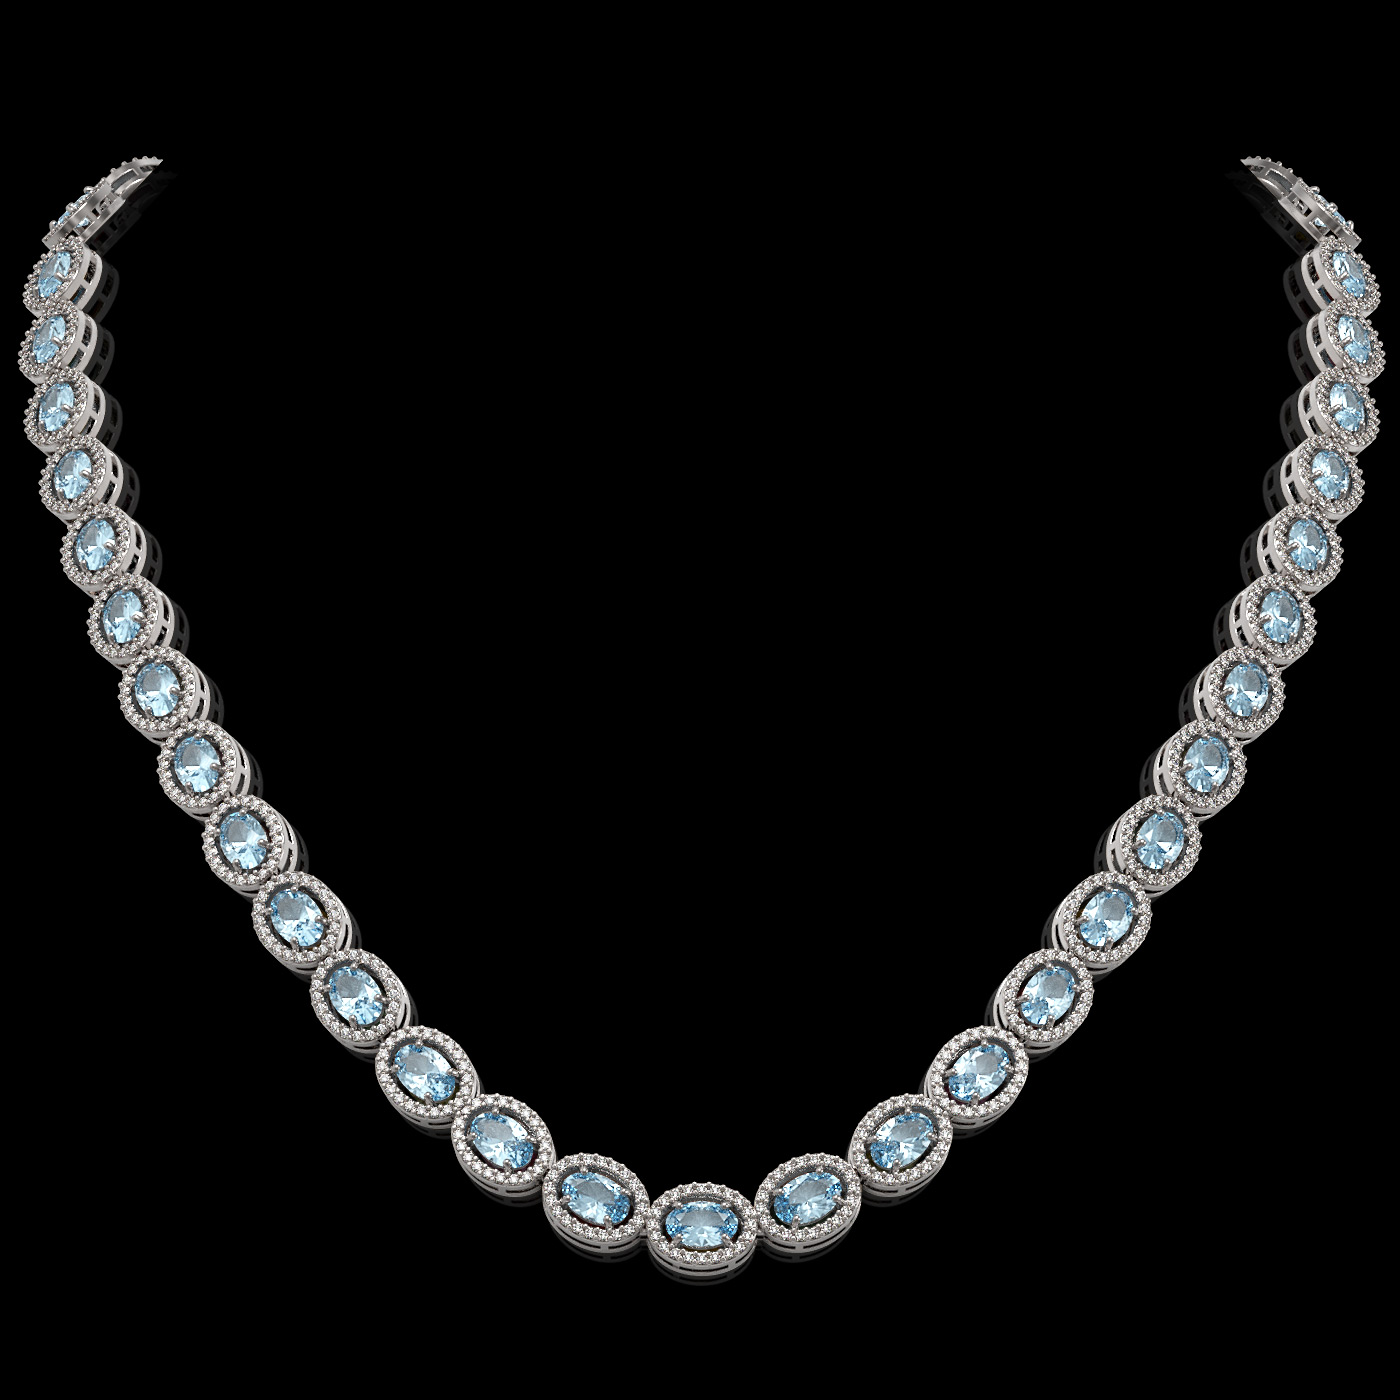 33.25 Ctw Sky Topaz & Diamond Necklace White Gold